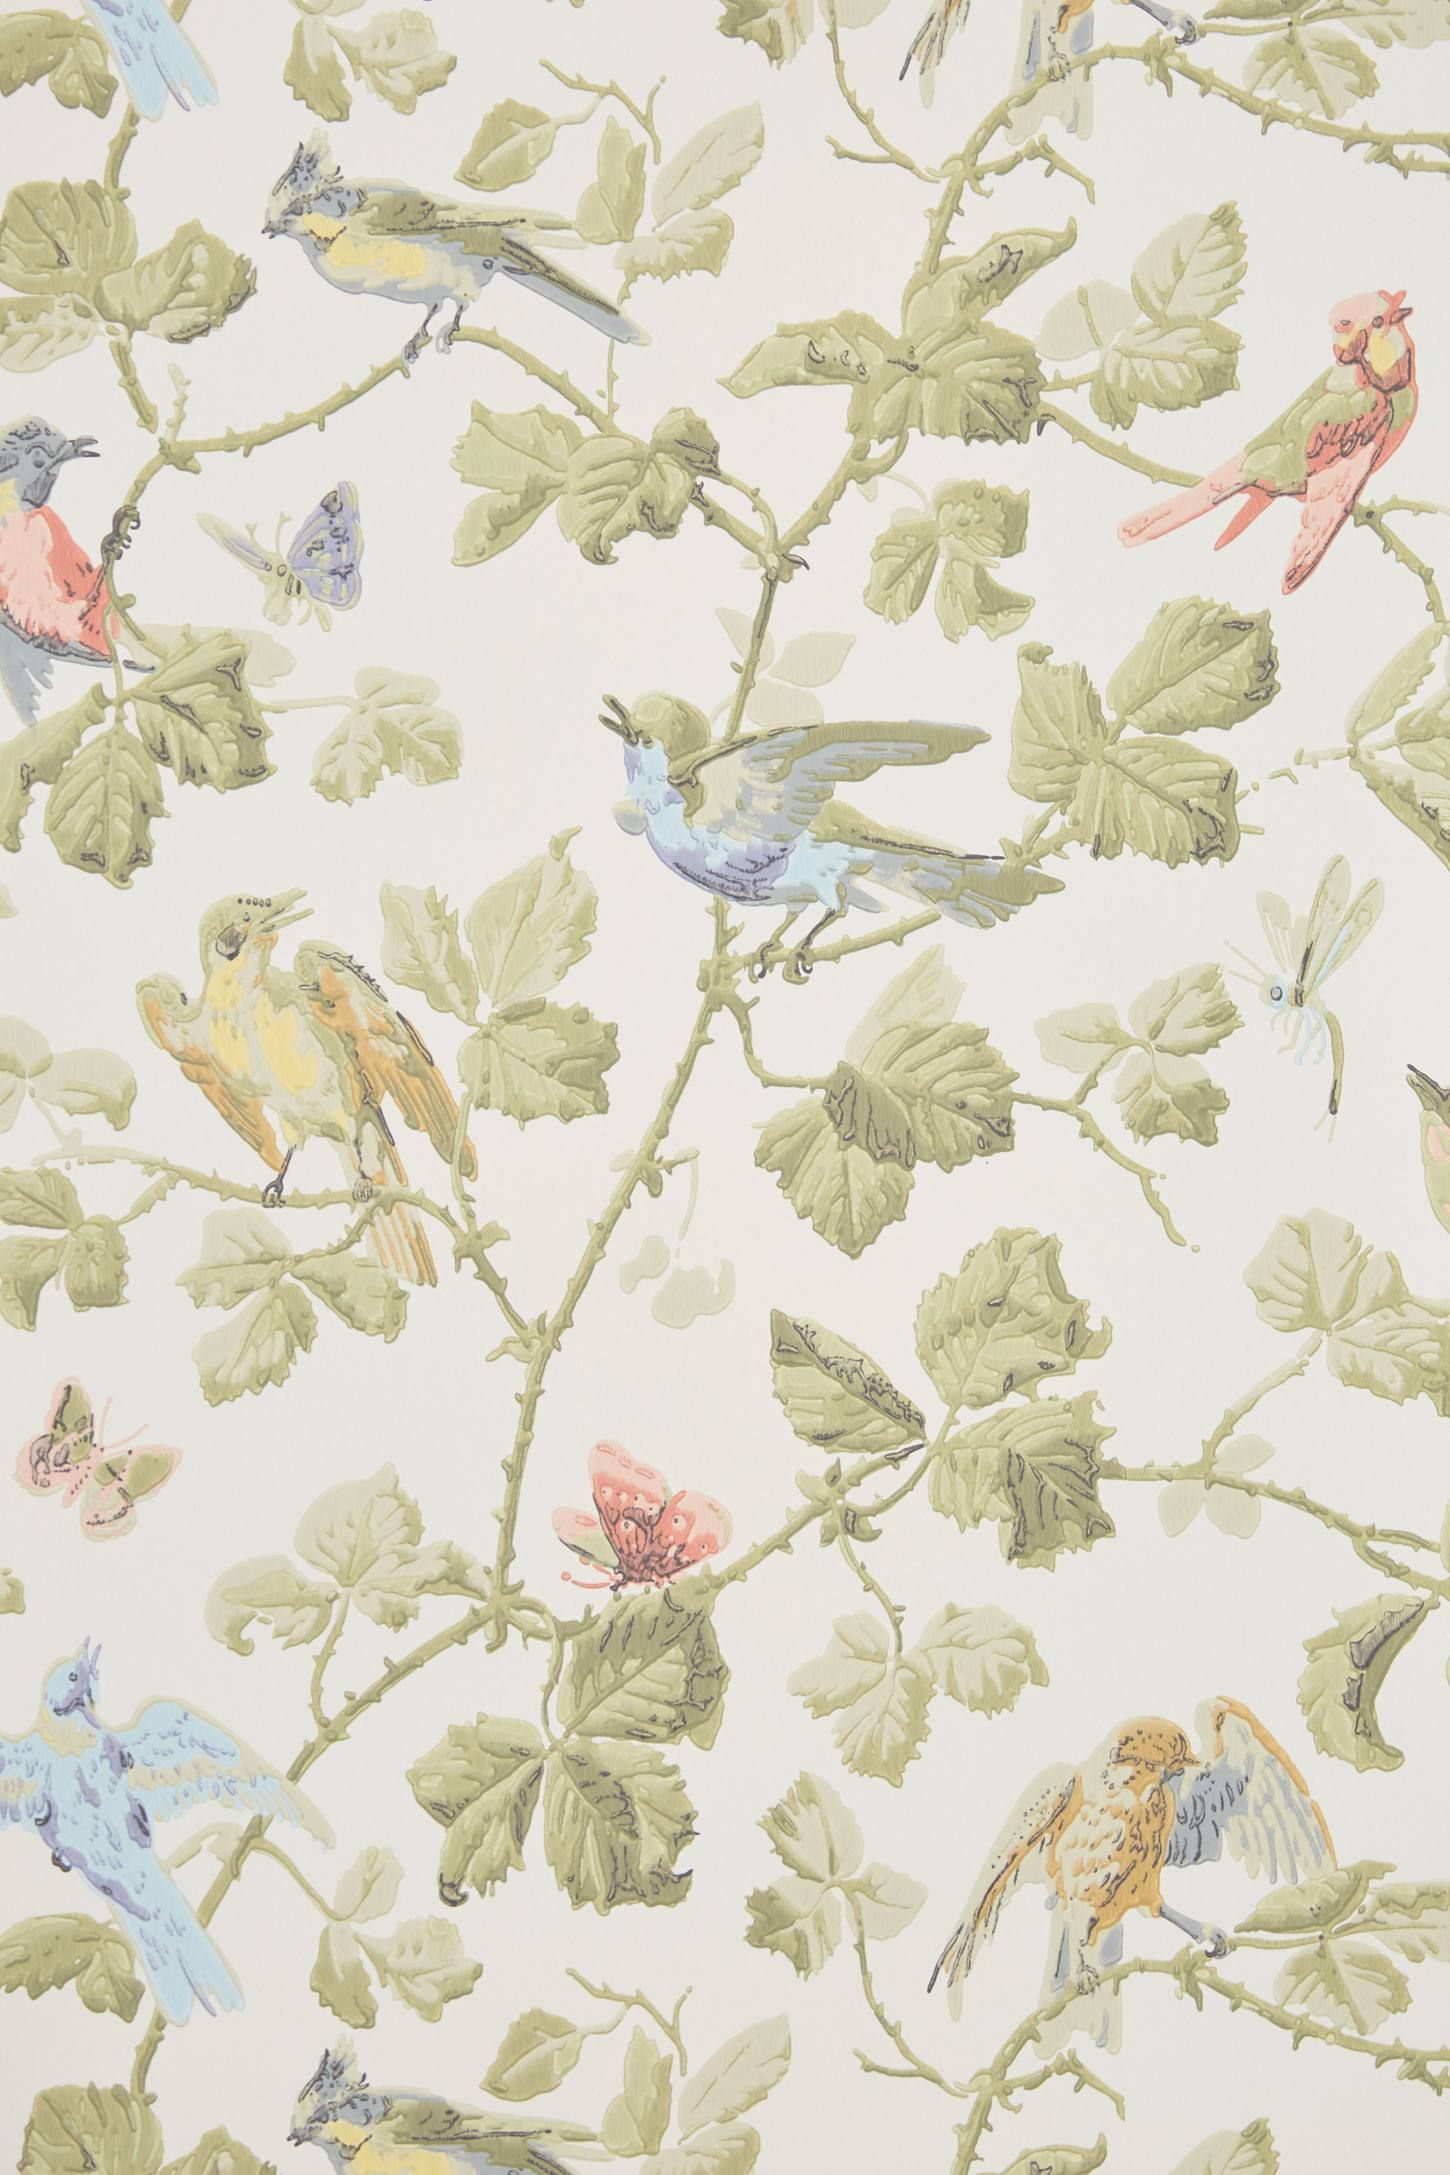 Wisteria Cranberry from the Laura Ashley wallpaper collection